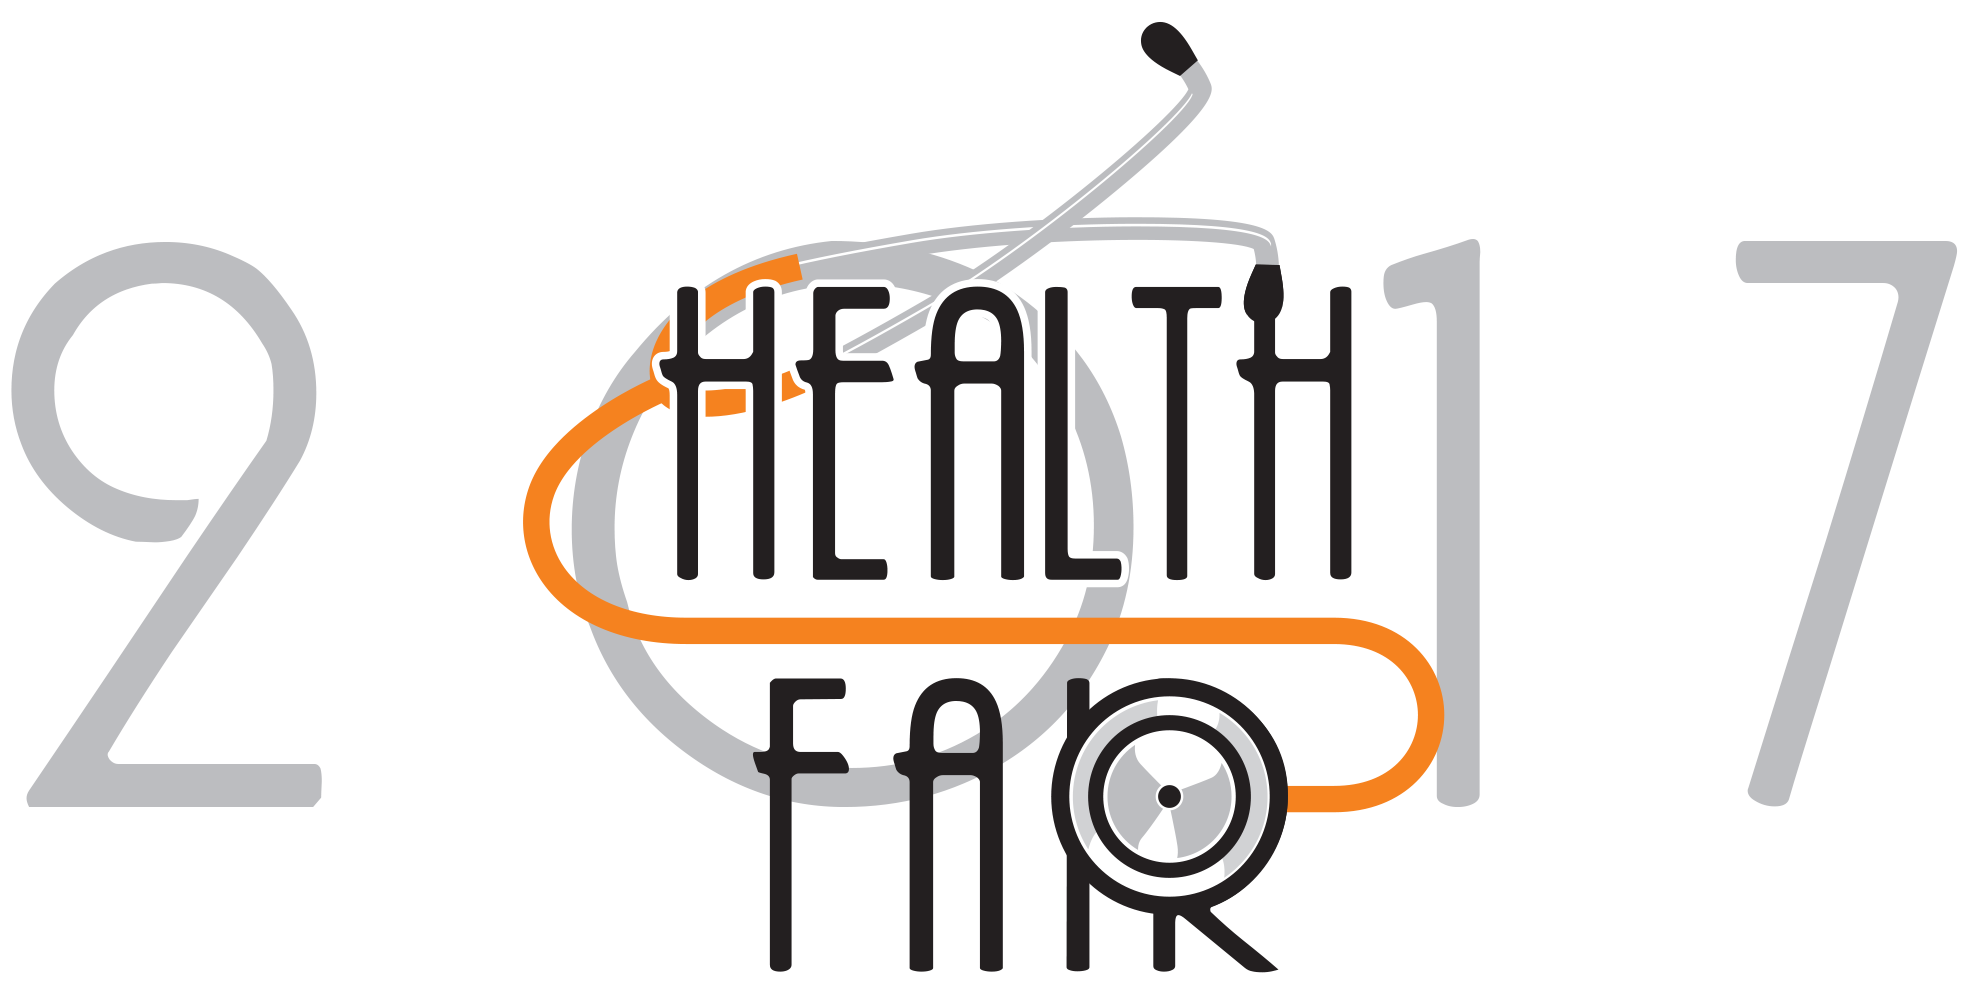 Health fair clipart transparent picture black and white library Health Fair Clipart | Free download best Health Fair Clipart ... picture black and white library